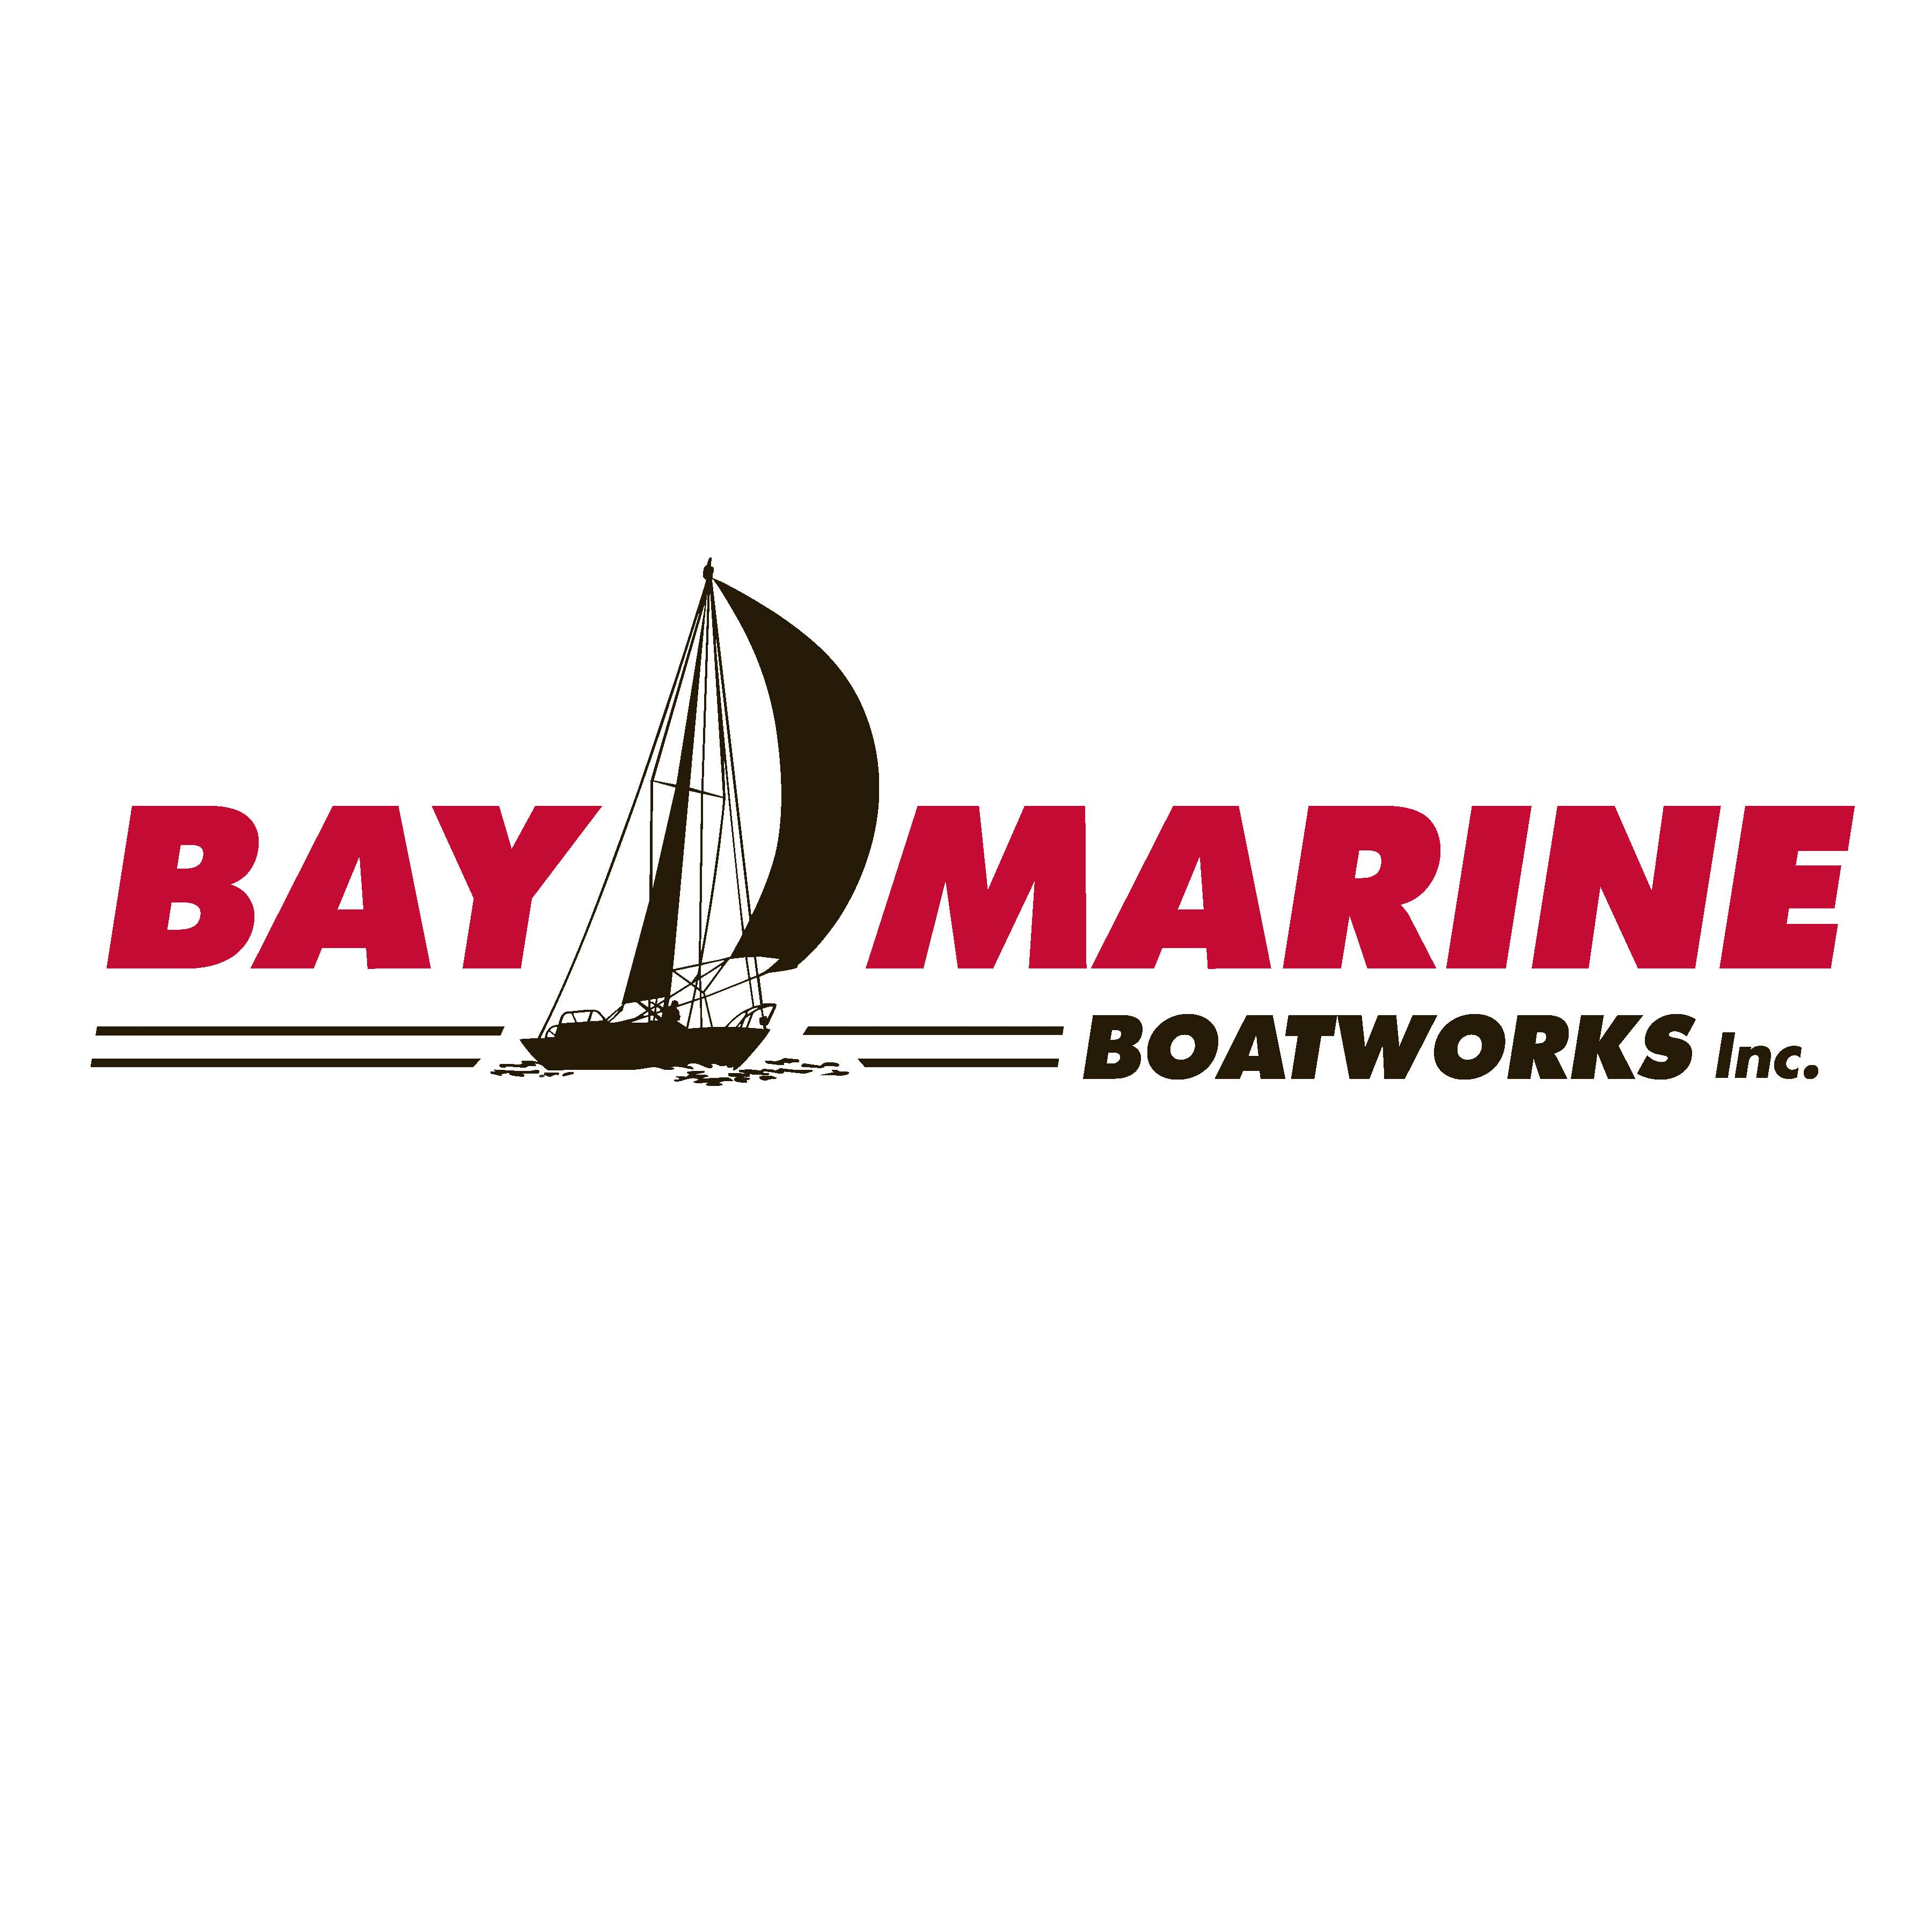 Bay Marine Boatworks